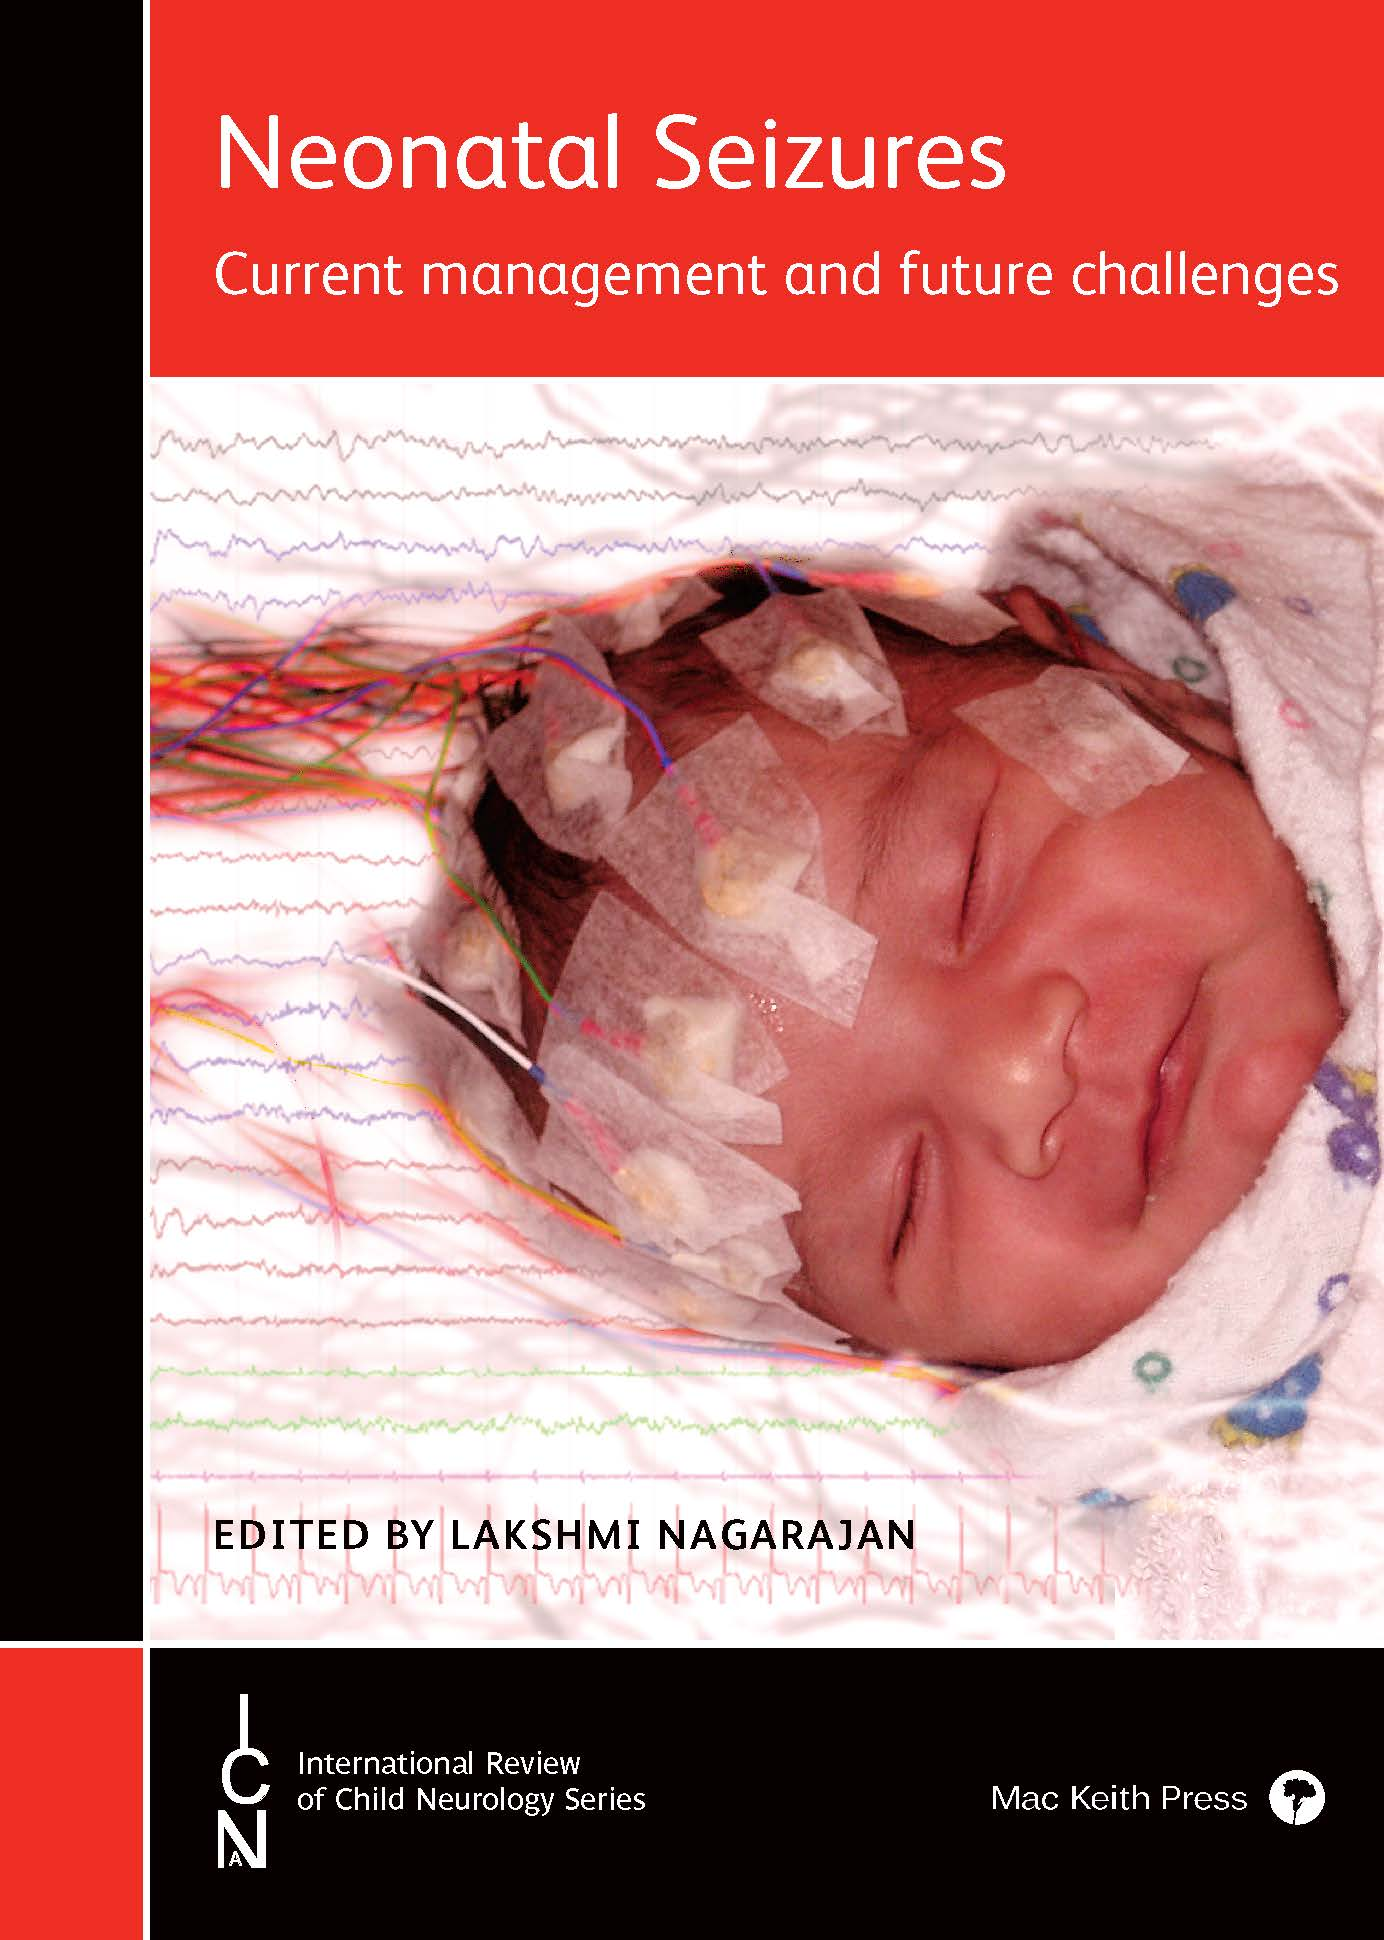 Neonatal Seizures: Current Management and Future Challenges